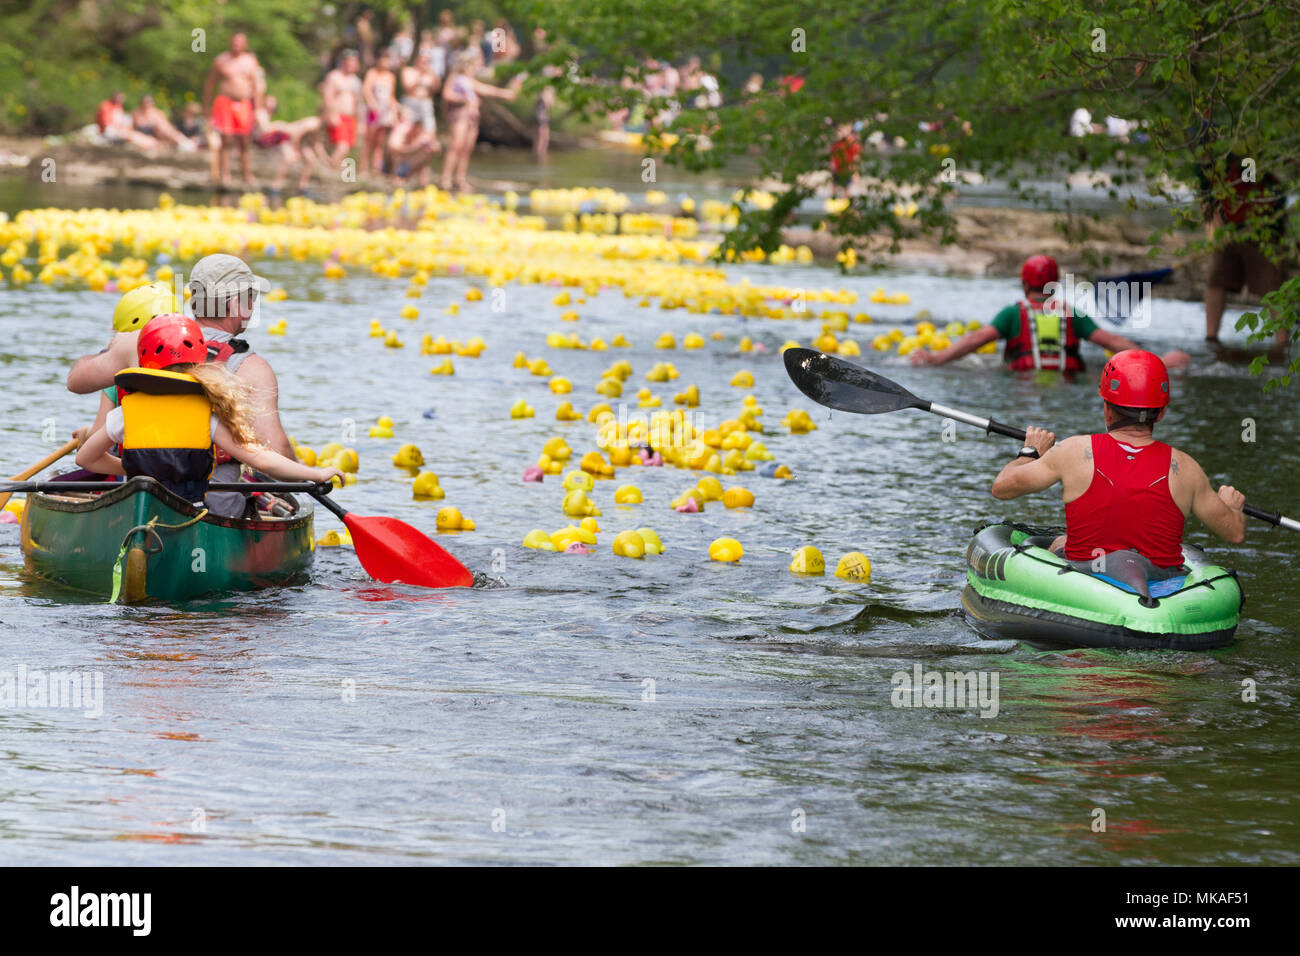 Richmond, North Yorkshire, UK. Monday 7th May, 2018. Organised by Richmond Duck Club, the Grand Duck Race takes place annually on May Day bank holiday and sees 2500 plastic ducks tipped into the River Swale from the Green Bridge from where they float downstream, over the waterfalls to the finishing line at the Batts near the Station Bridge. Credit: Andrew Nicholson/Alamy Live News Stock Photo